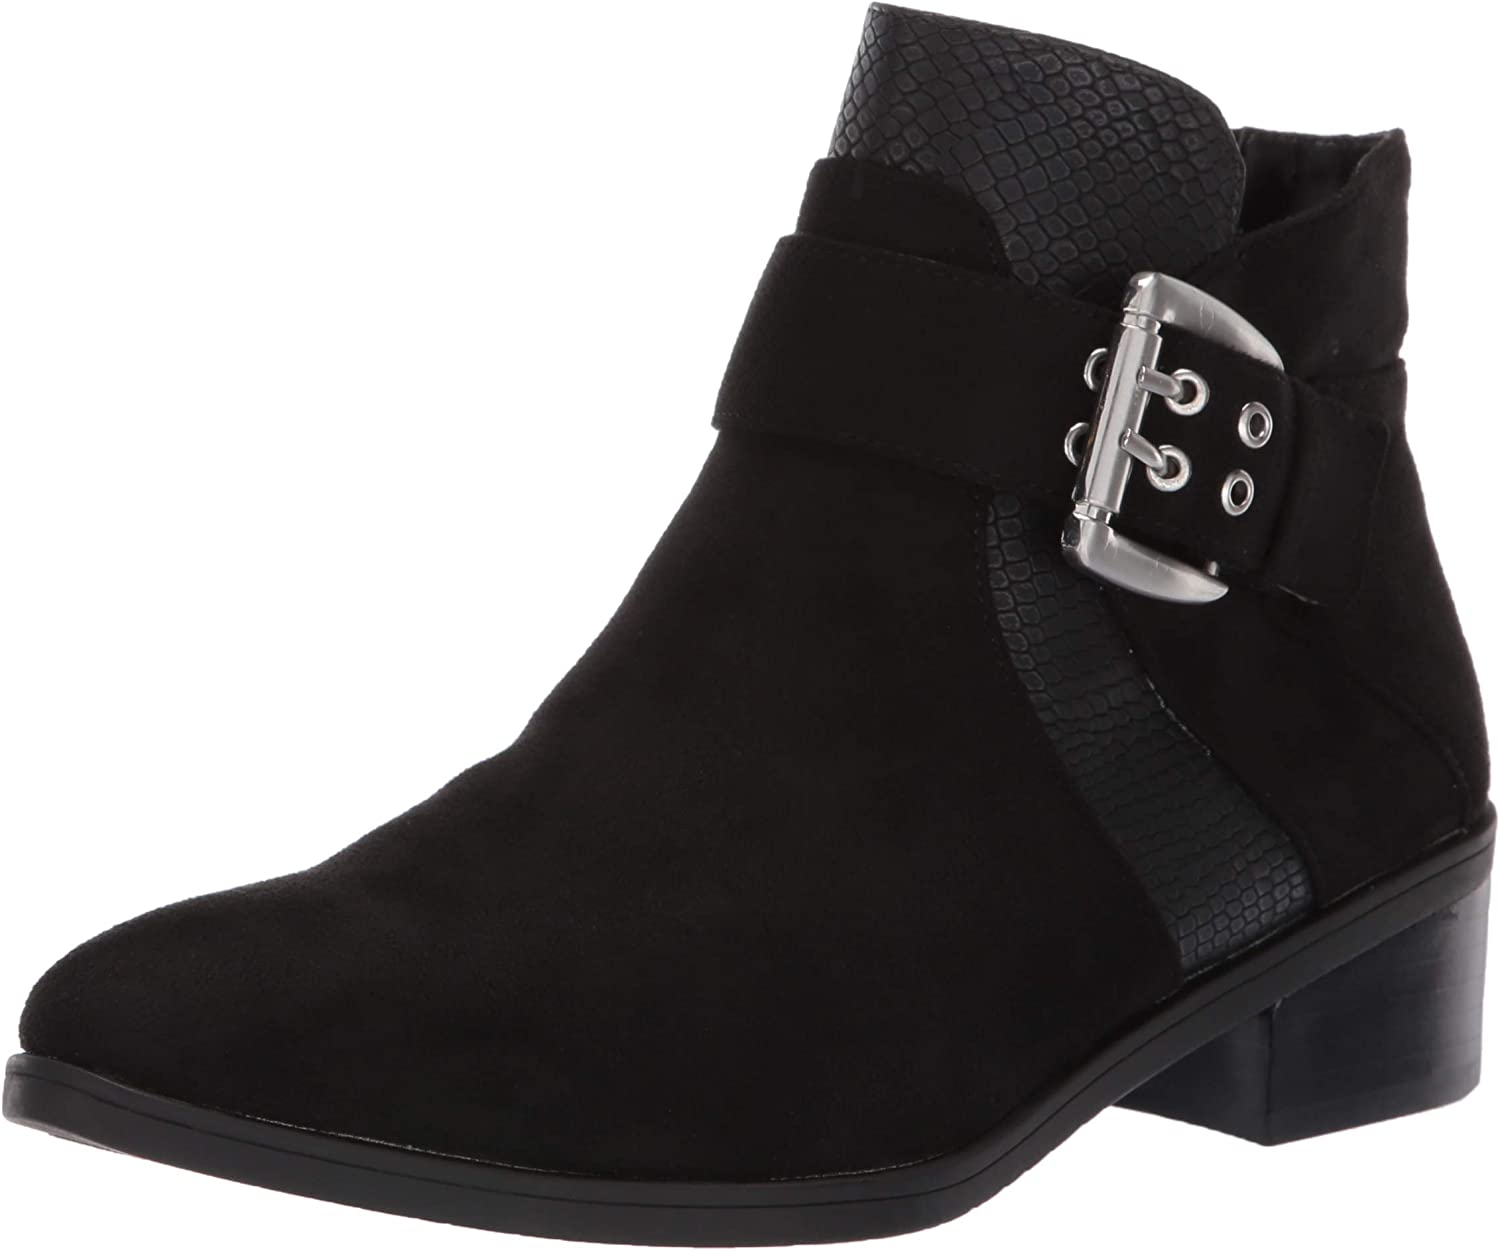 Bella Vita Women's Honor Ii Ankle Boot Super beauty Cash special price product restock quality top